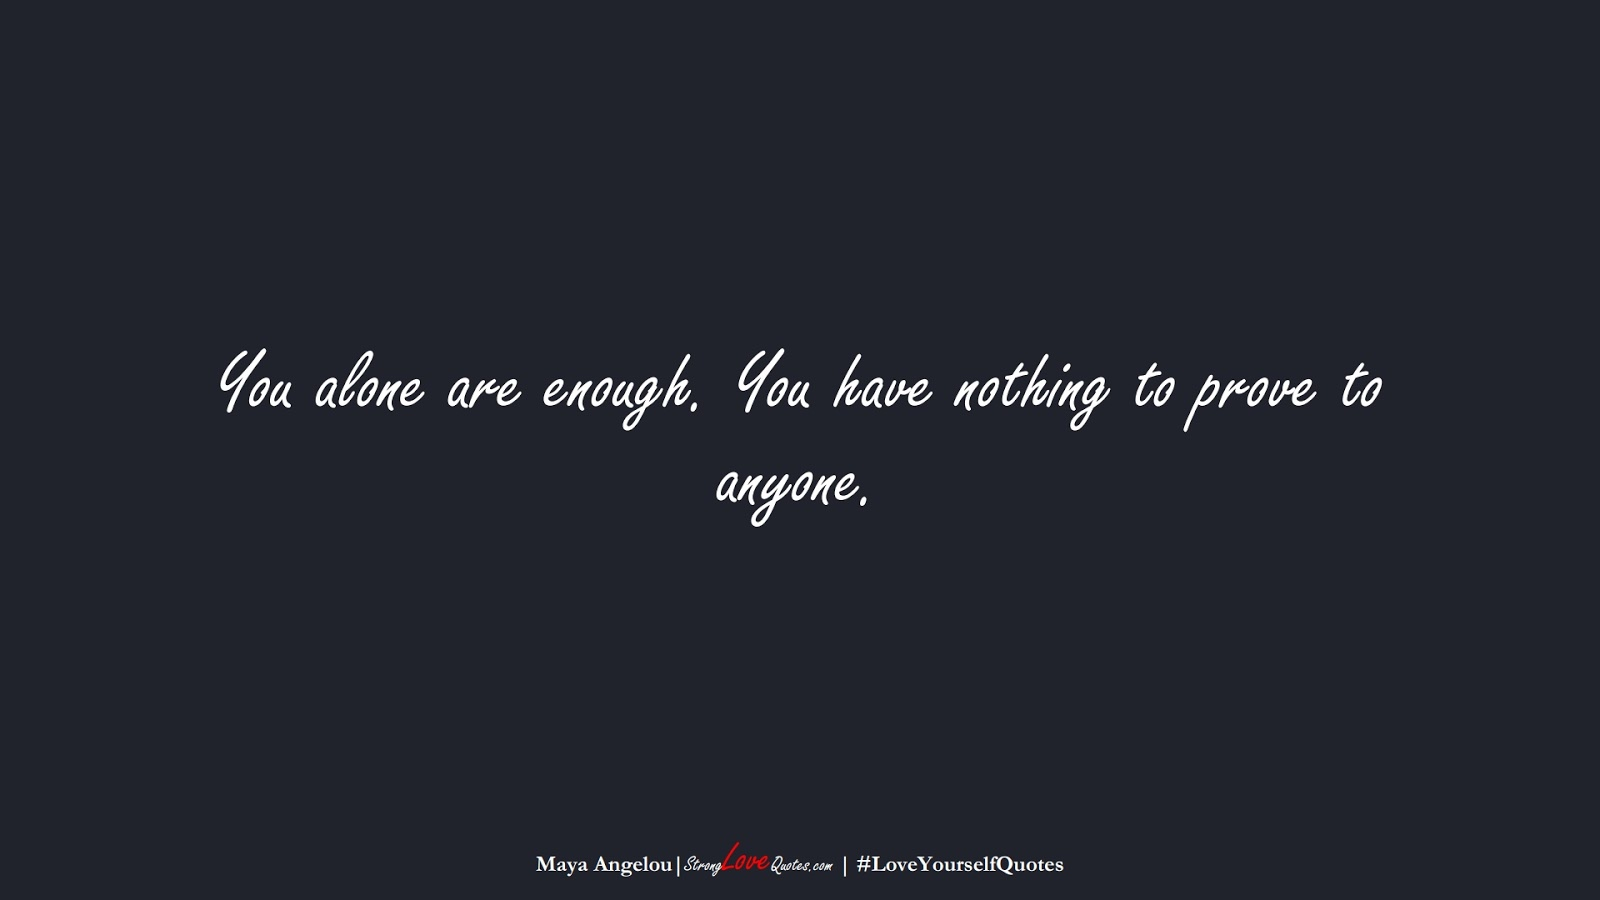 You alone are enough. You have nothing to prove to anyone. (Maya Angelou);  #LoveYourselfQuotes